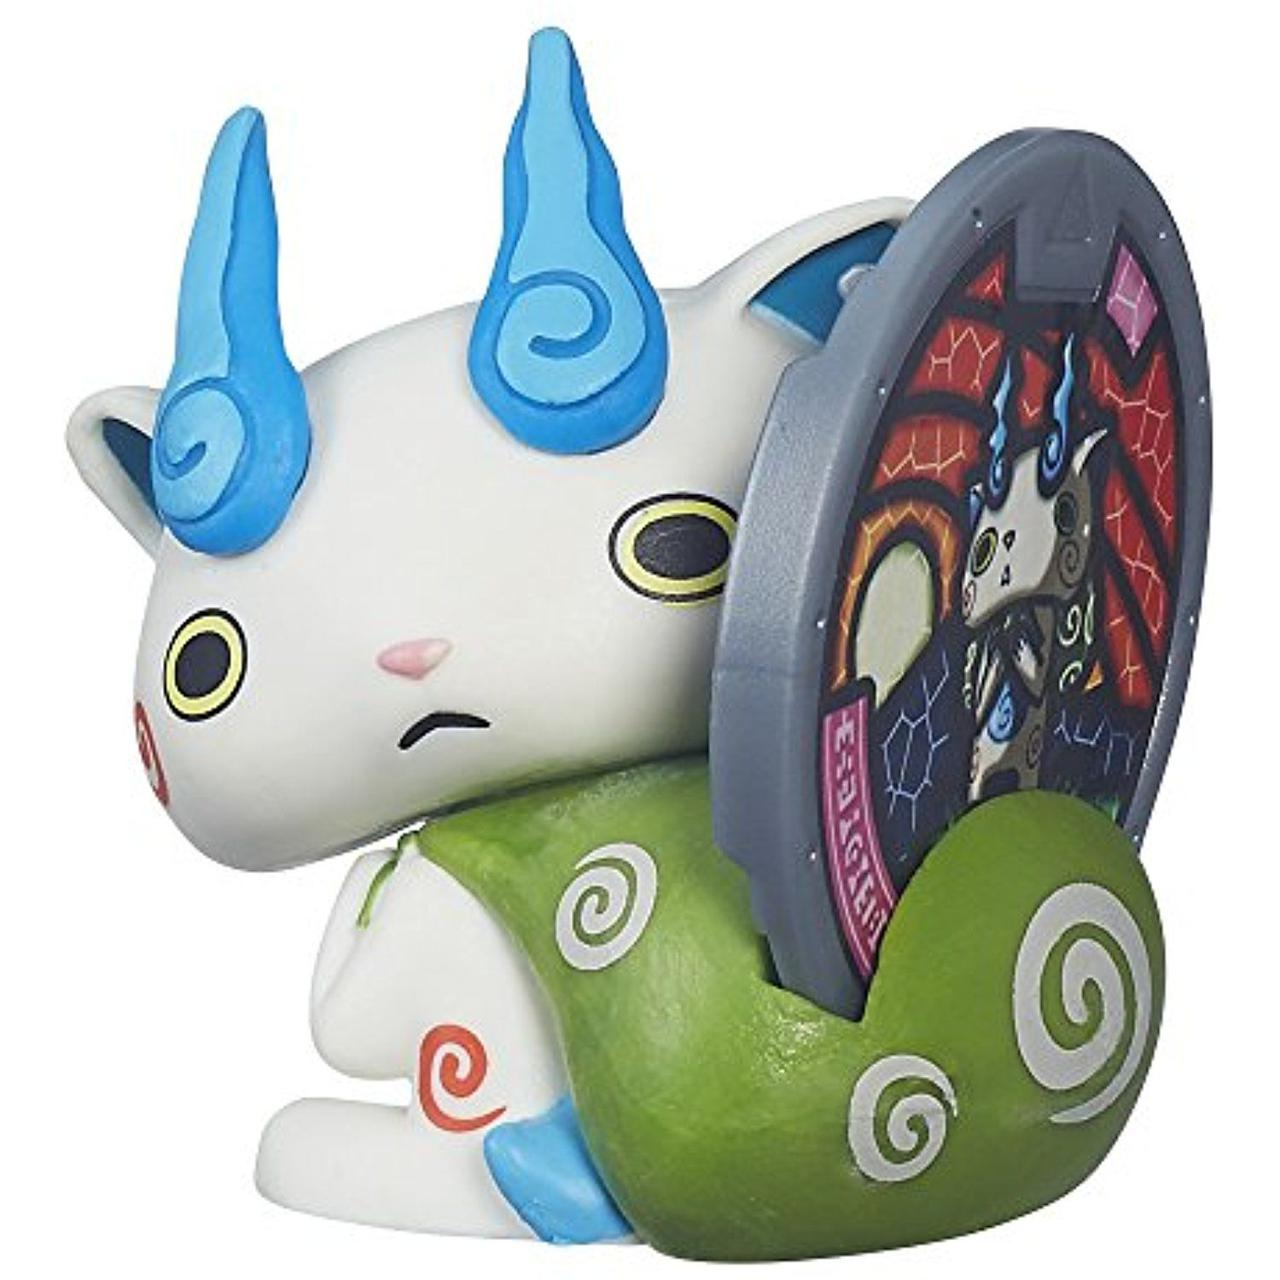 Фигурка Yo-Kai Watch с медалью - Komasan. Оригинал Hasbro B5940/B5937